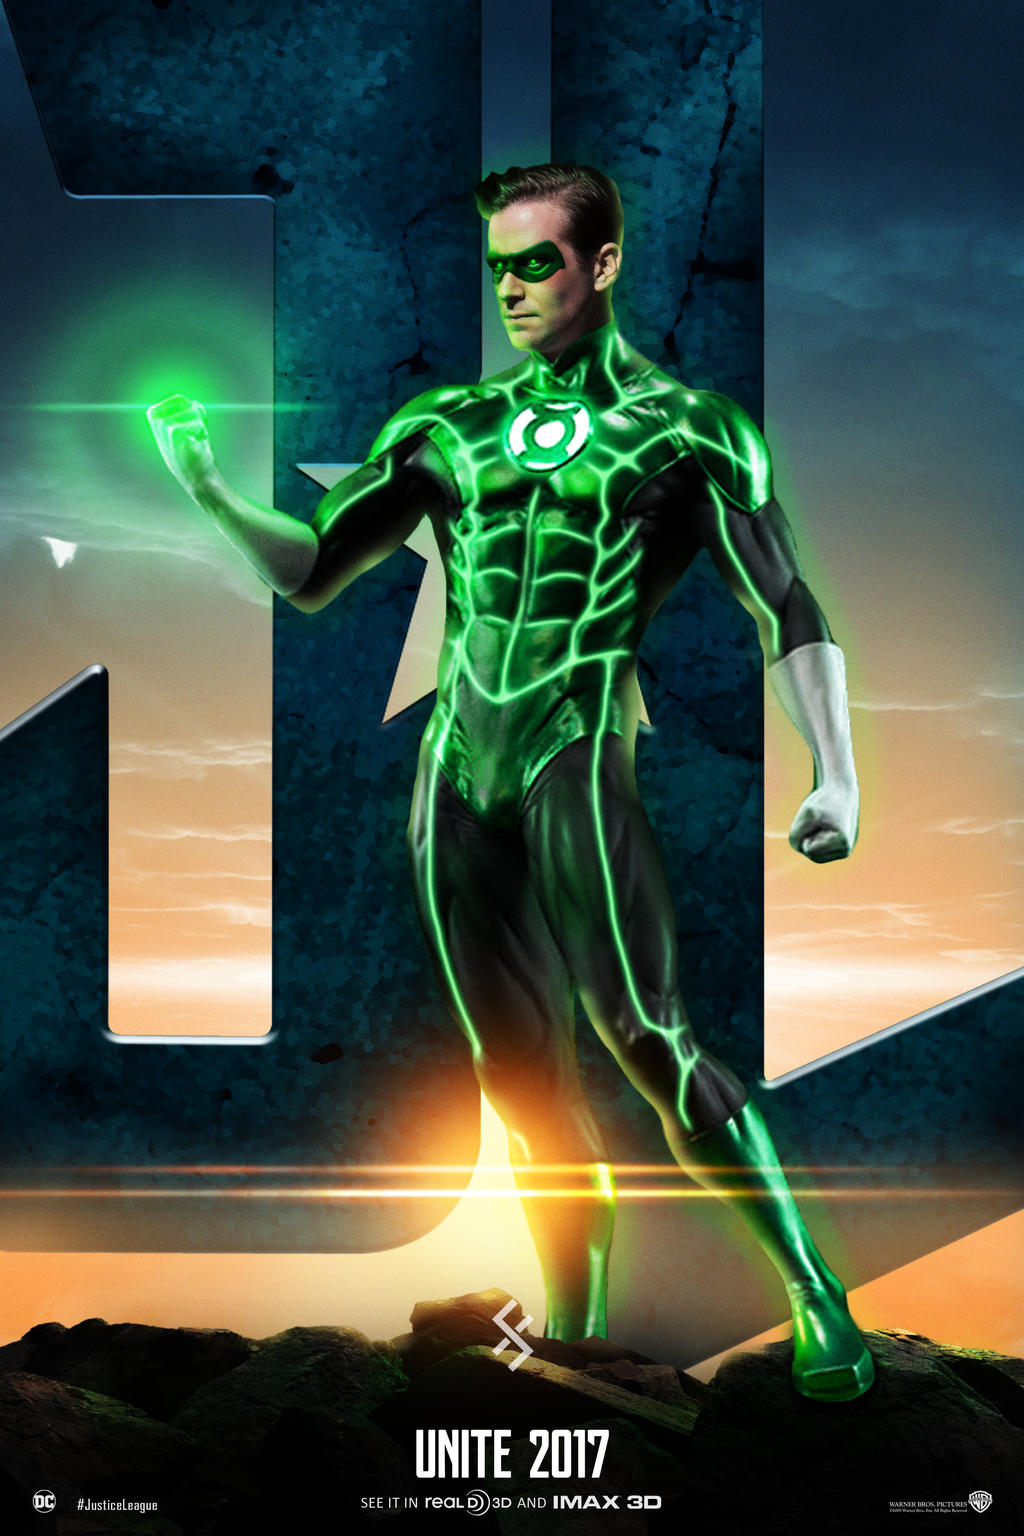 Justice League Unite - Green Lantern by farrrou on DeviantArt